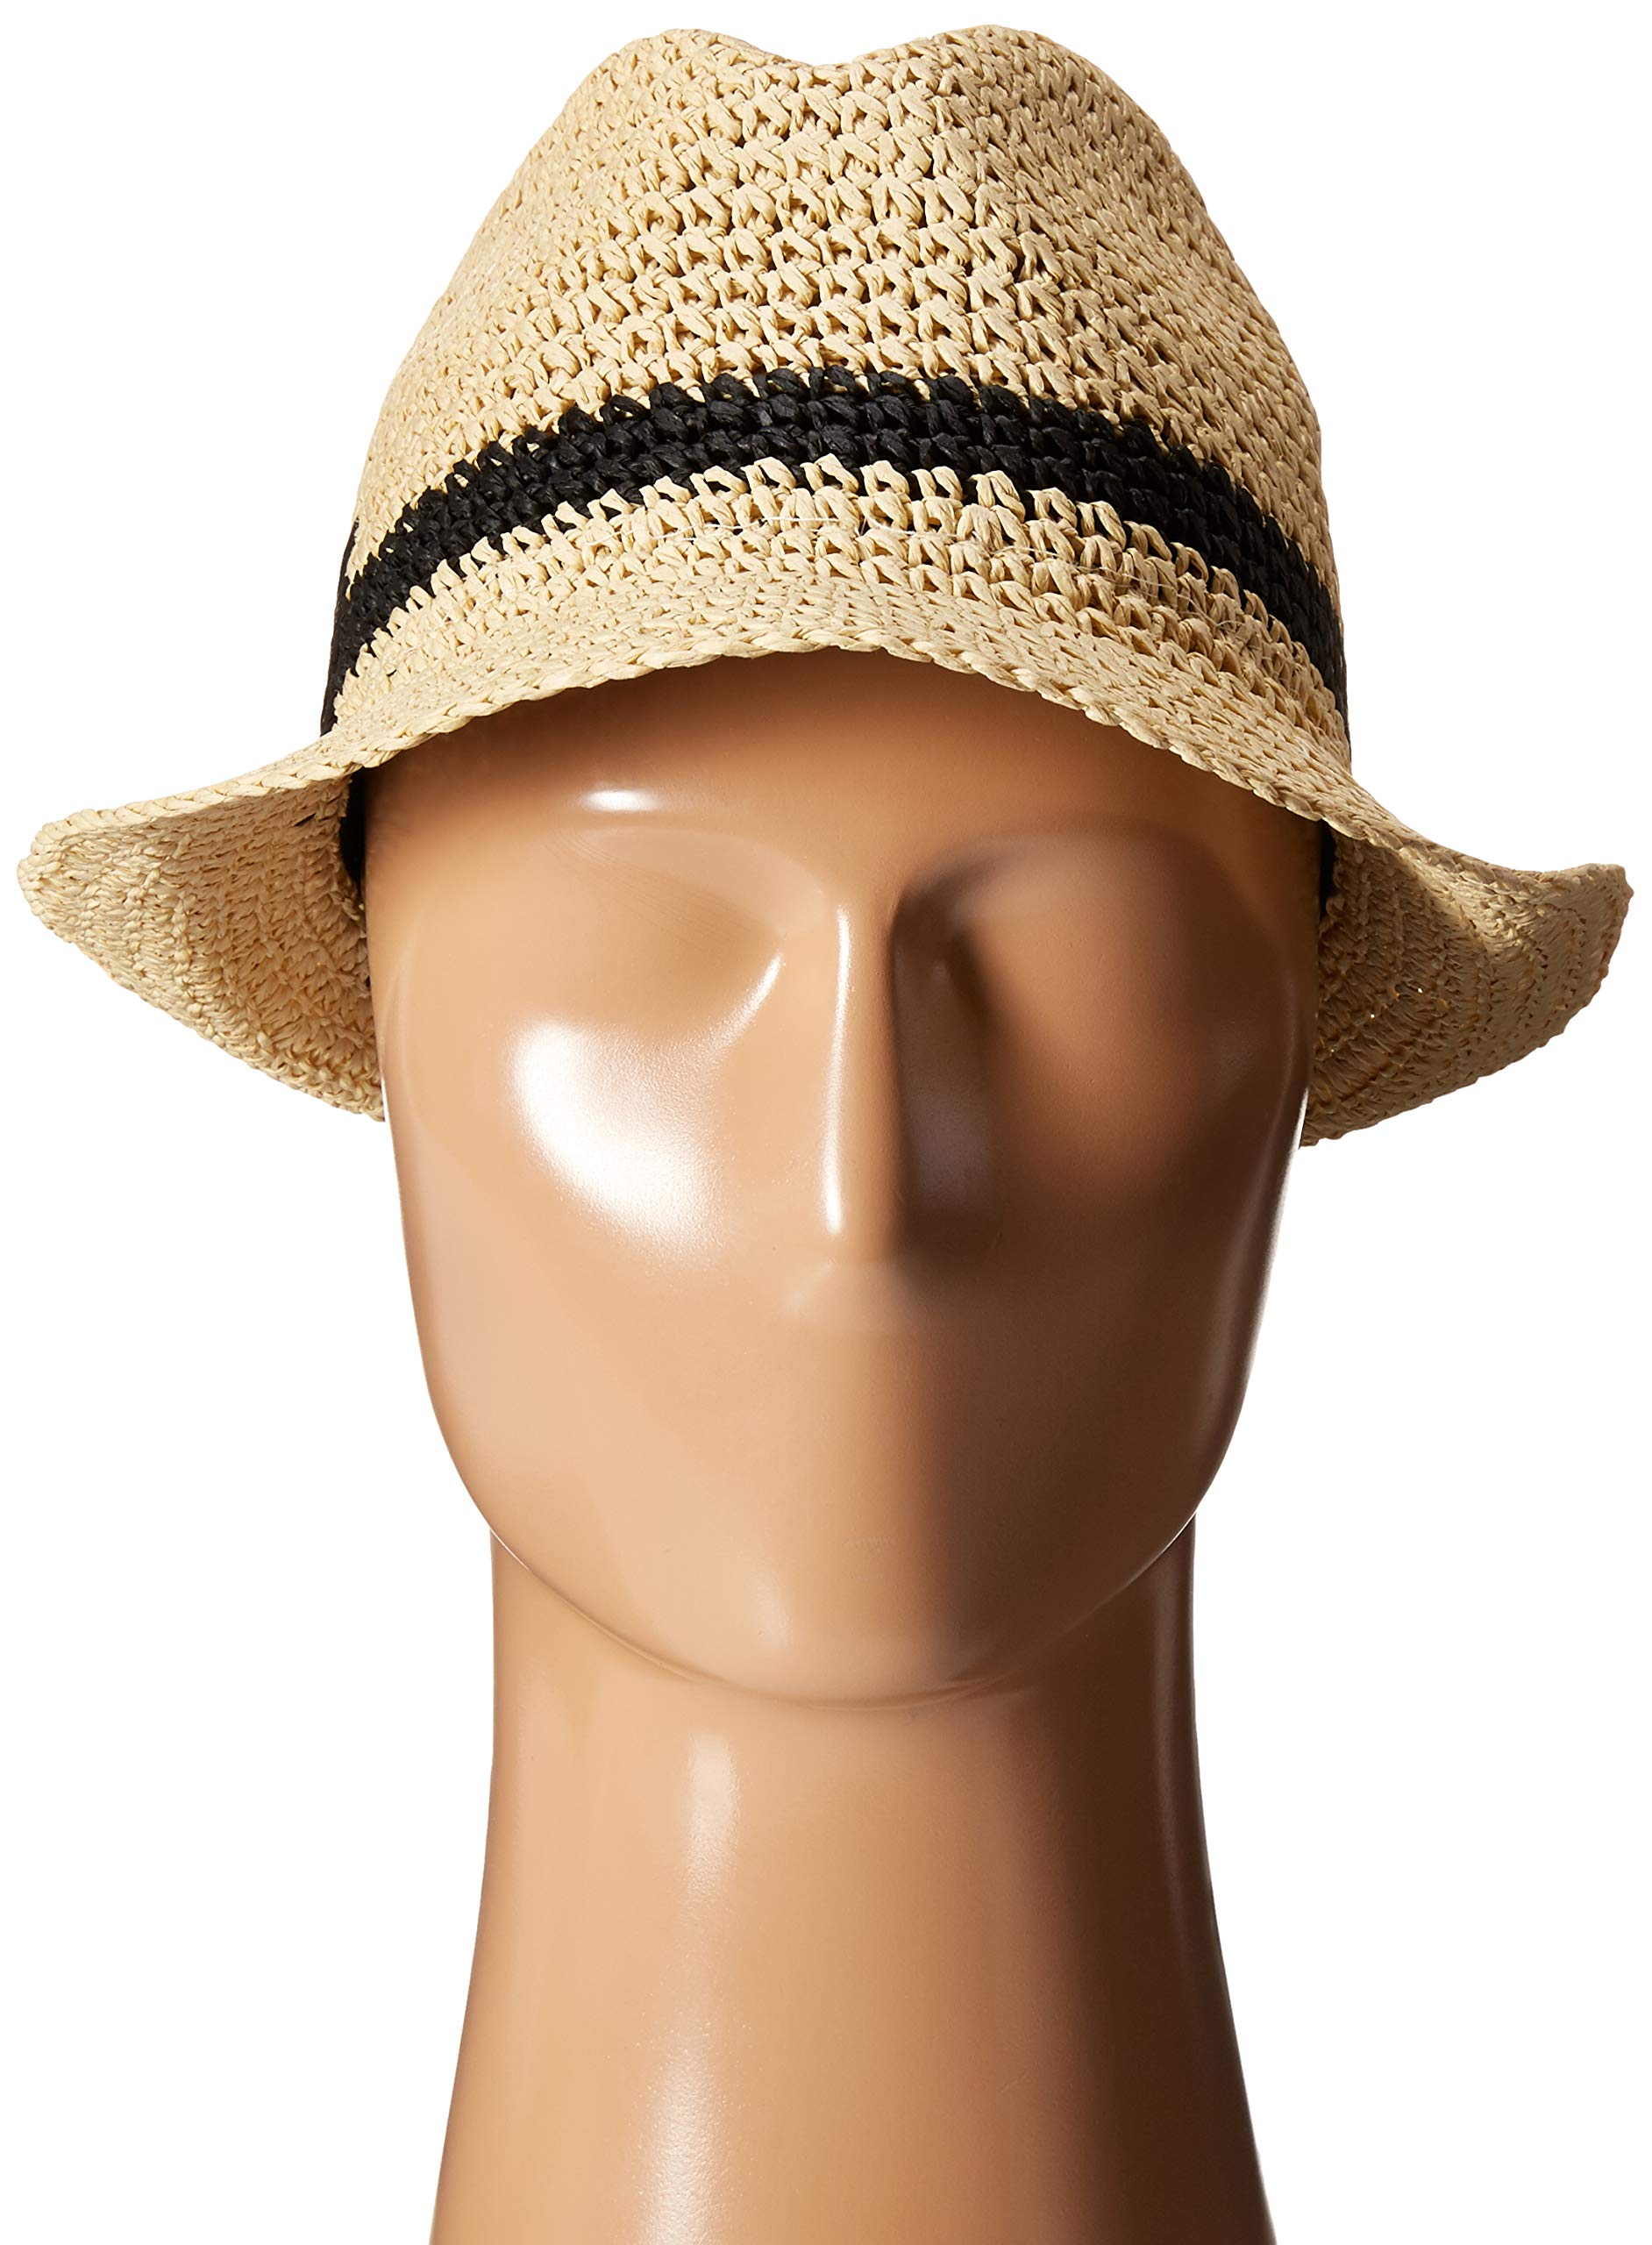 Kate Spade New York Women's Crochet Packable Fedora Natural/Black One Size by Kate Spade New York (Image #5)